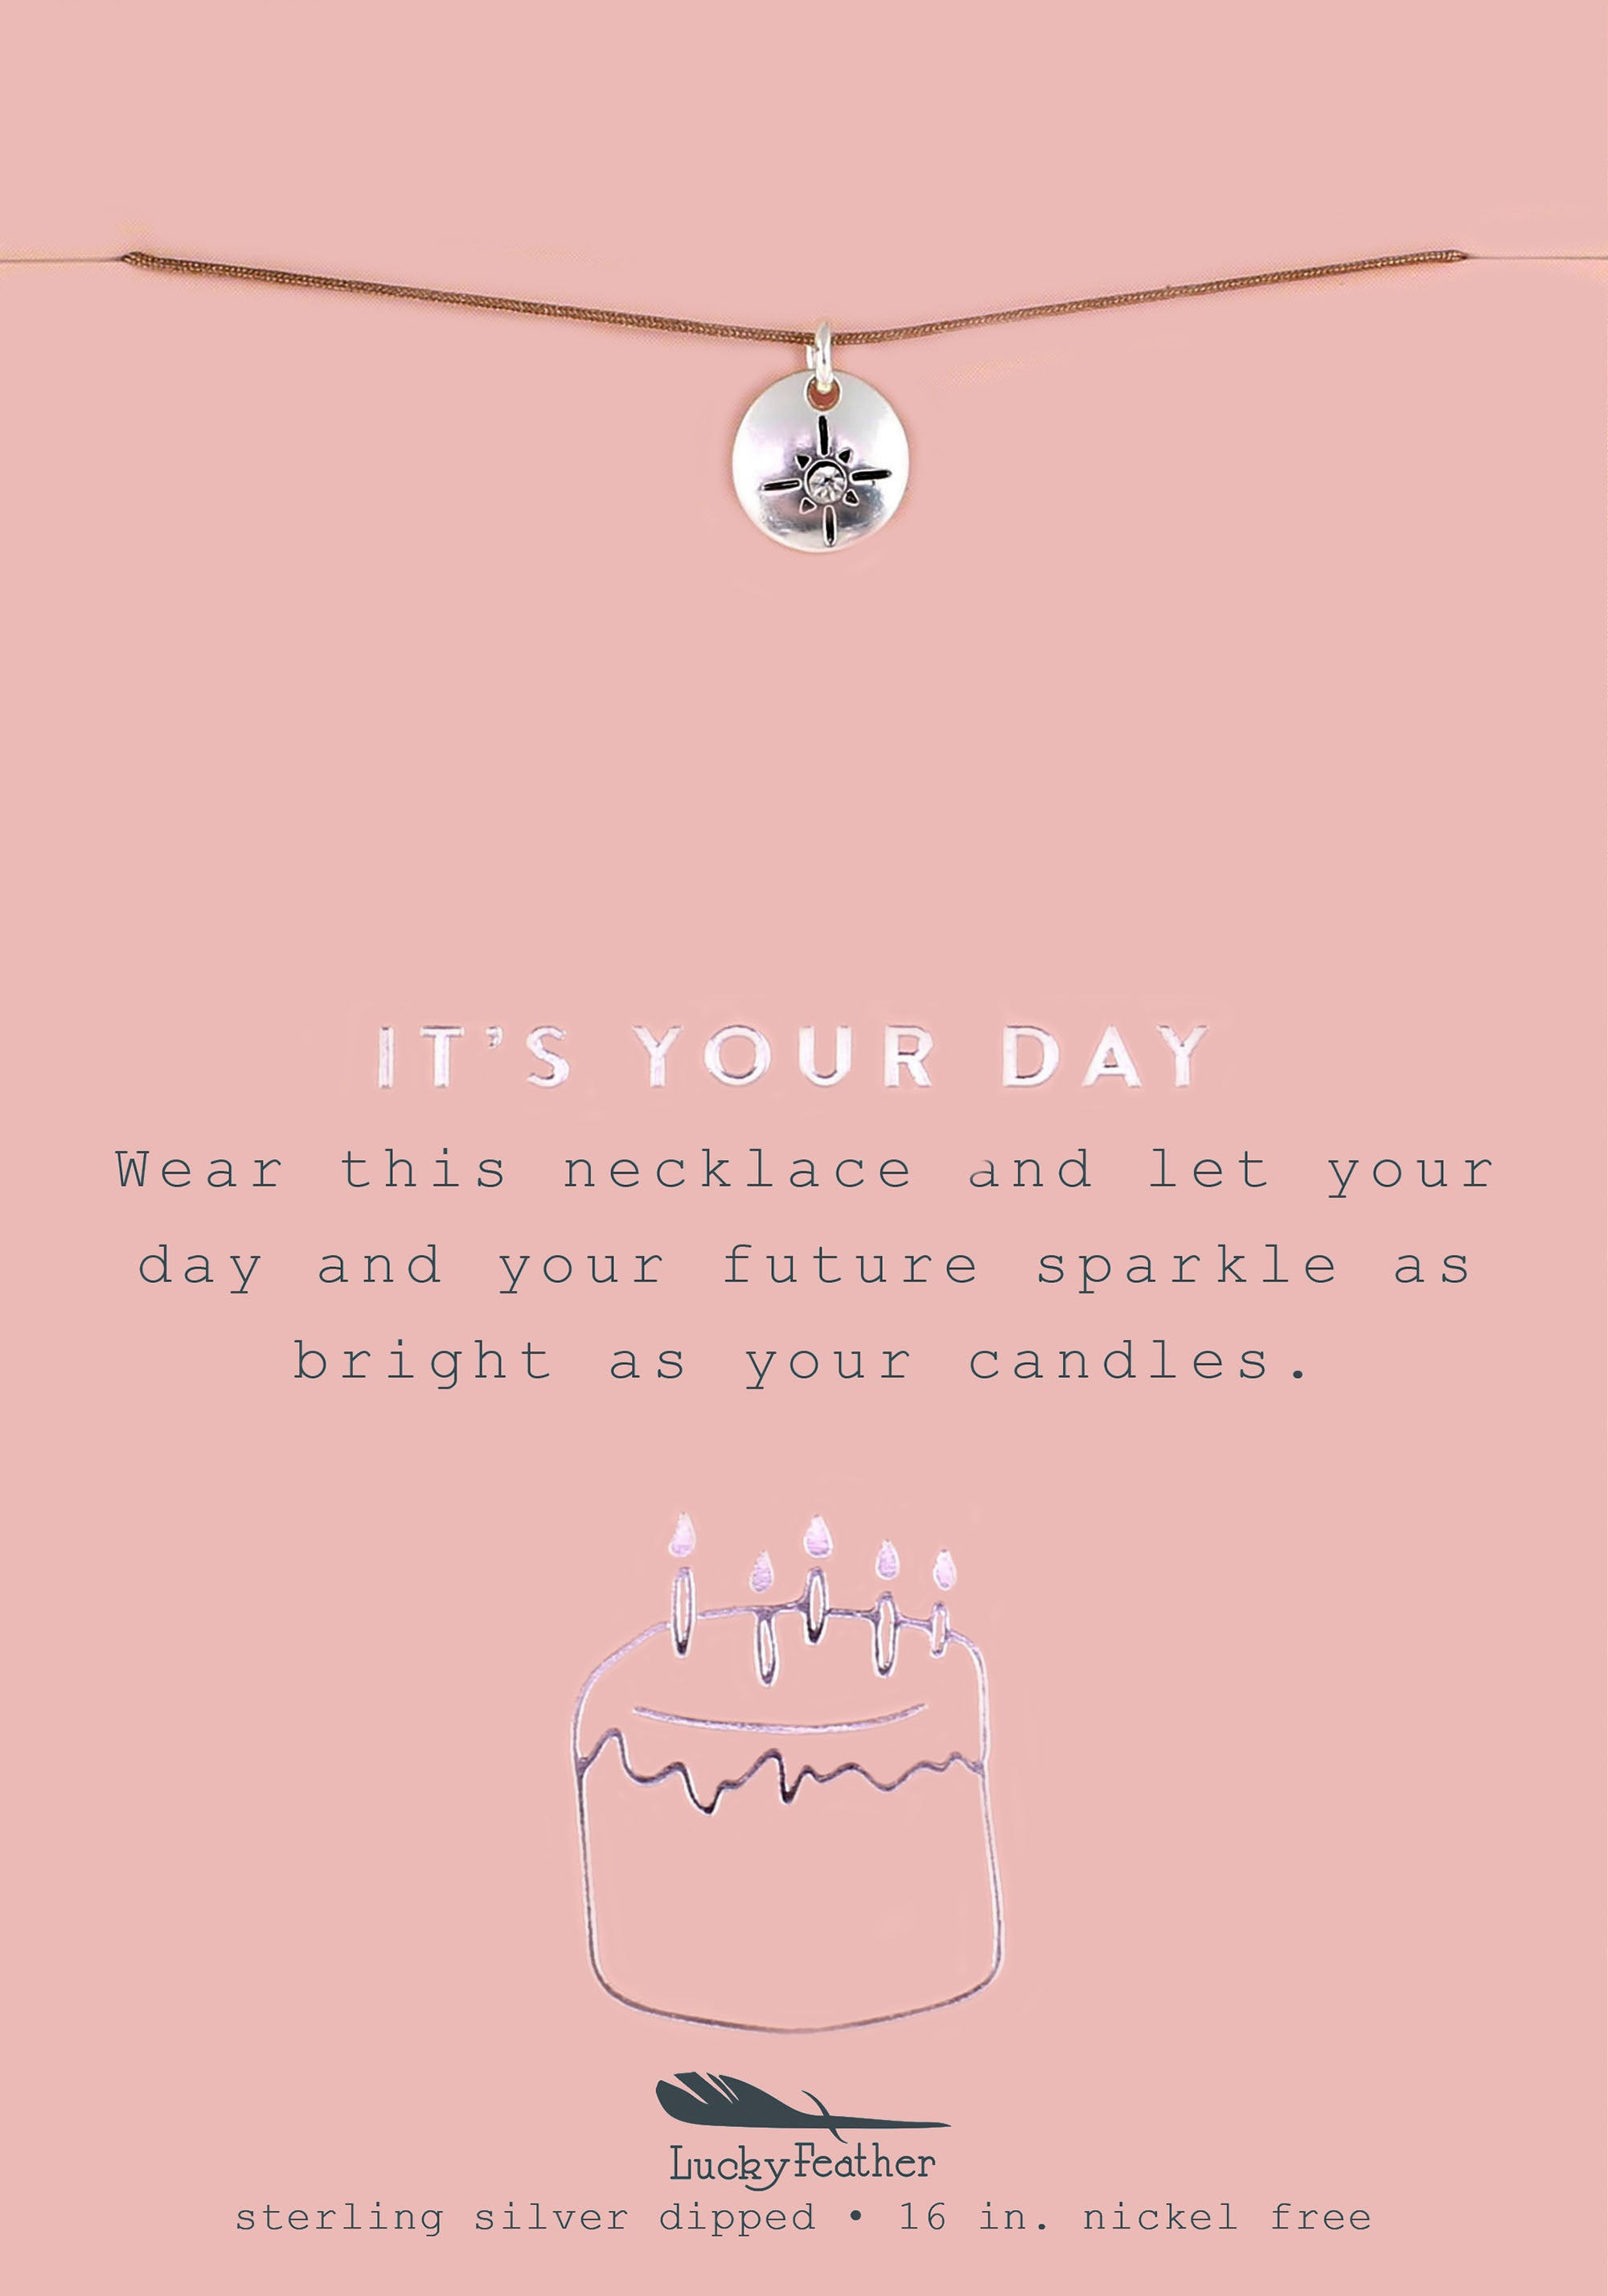 It's Your Day, Silver Starburst Necklace